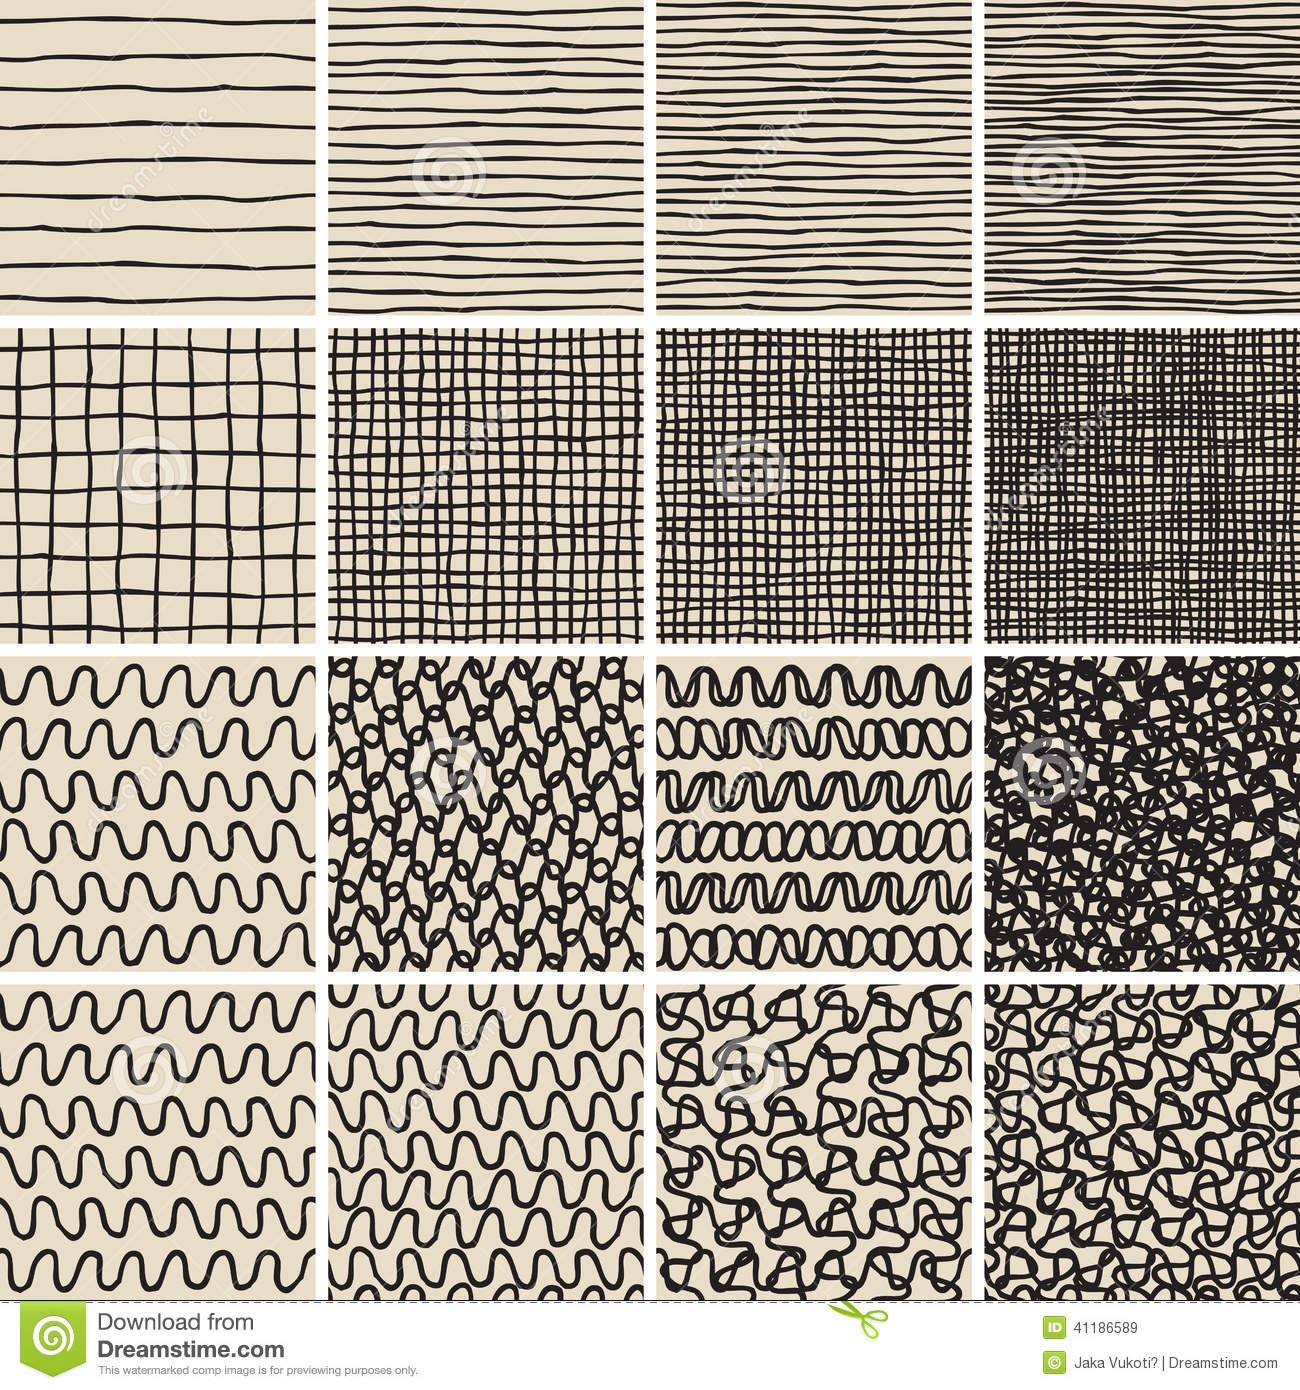 Water Animation Wallpaper Basic Doodle Seamless Pattern Set No 1 In Black And White